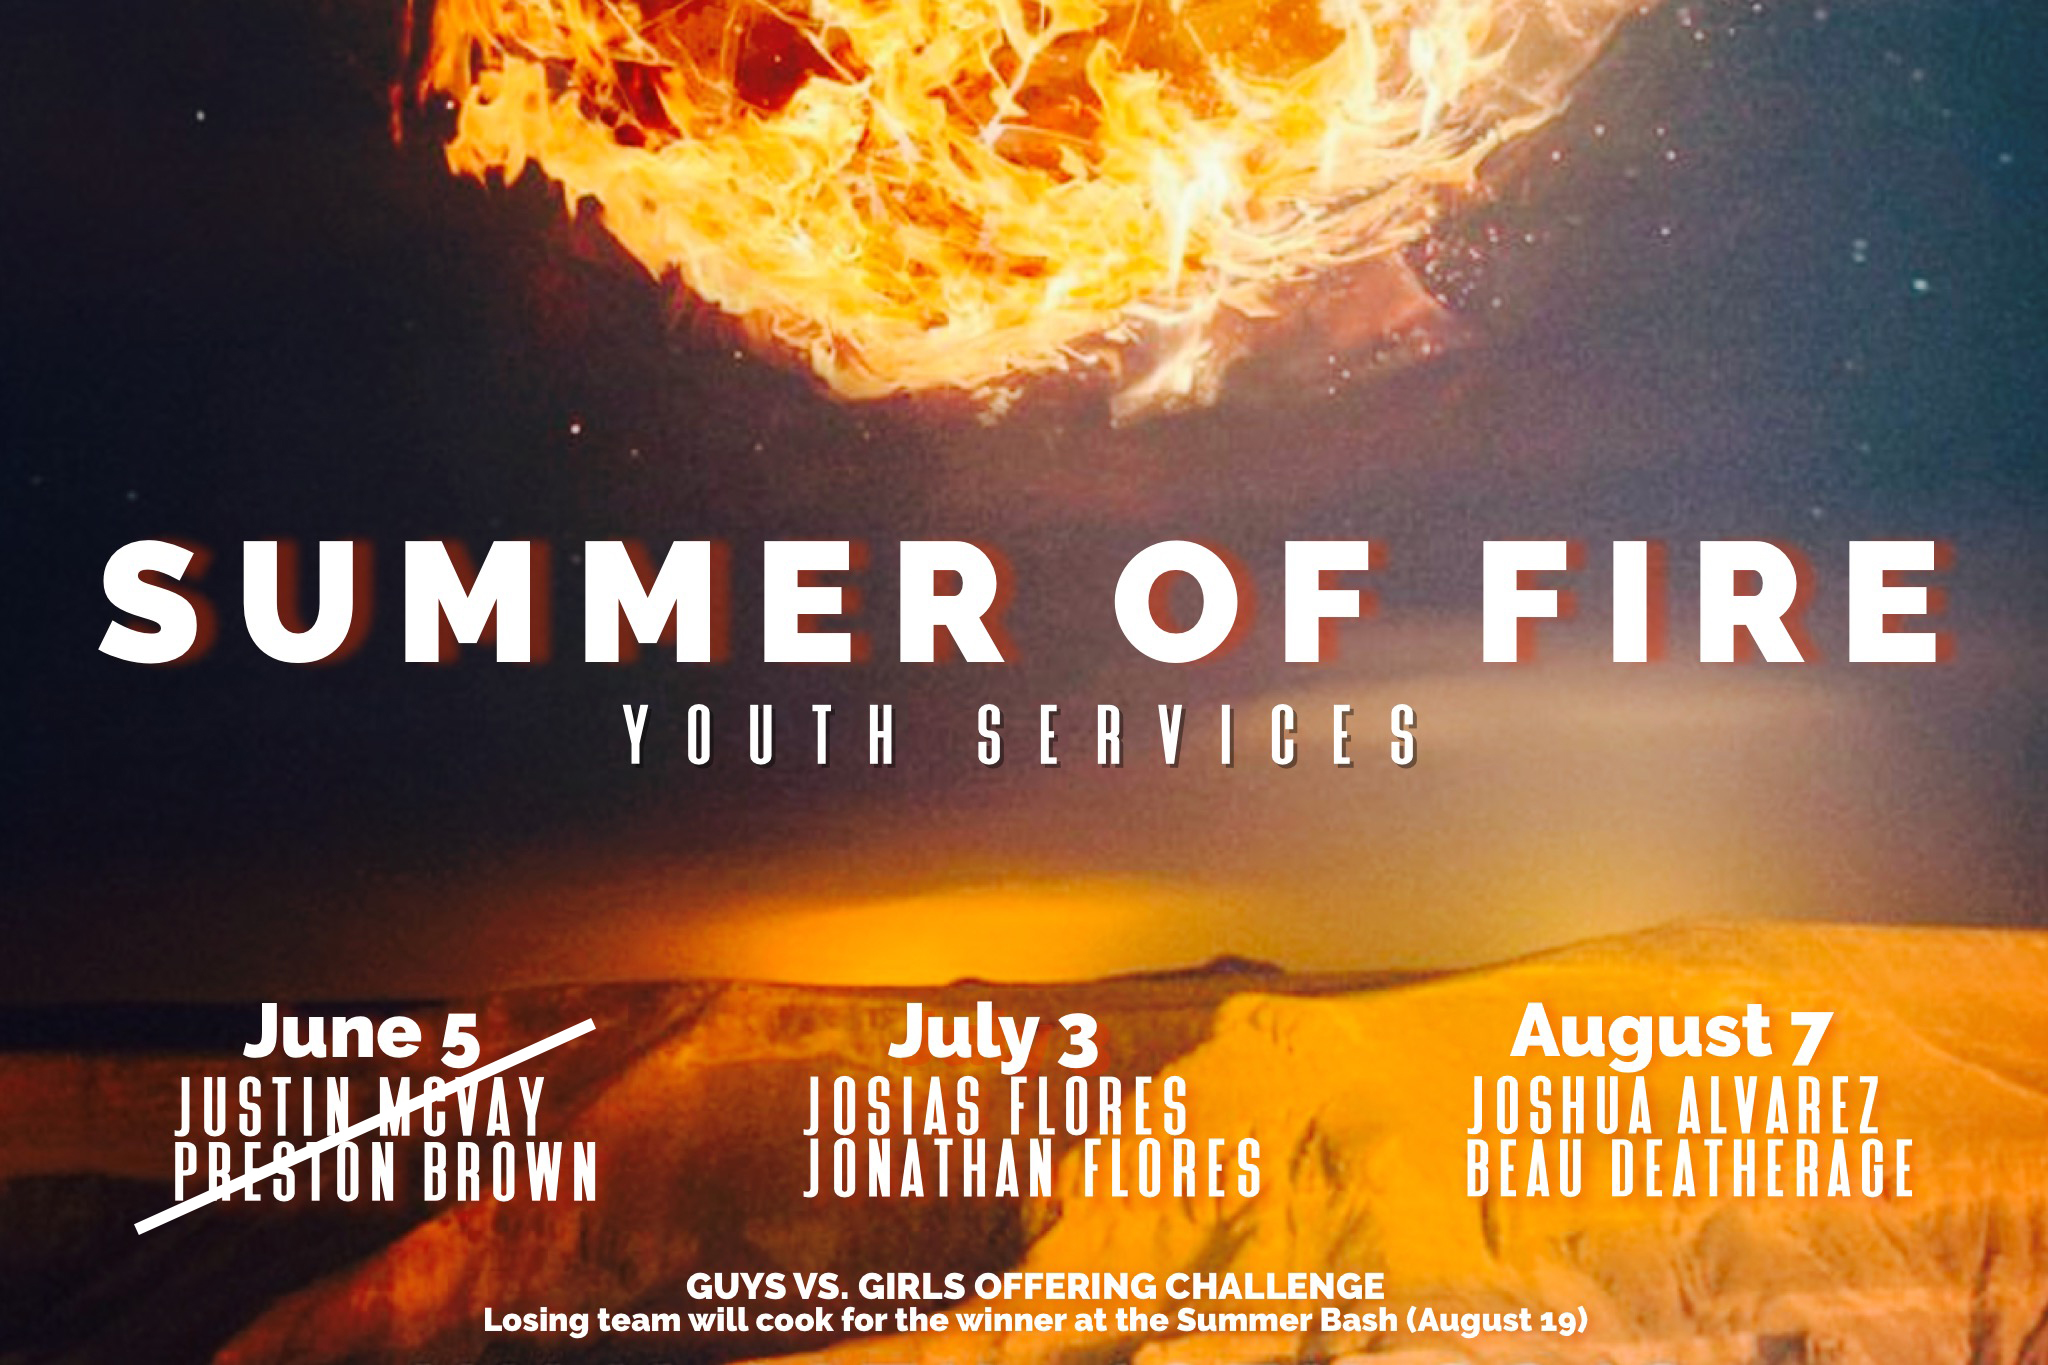 Summer of Fire Youth Services | Next is July 3, 2019